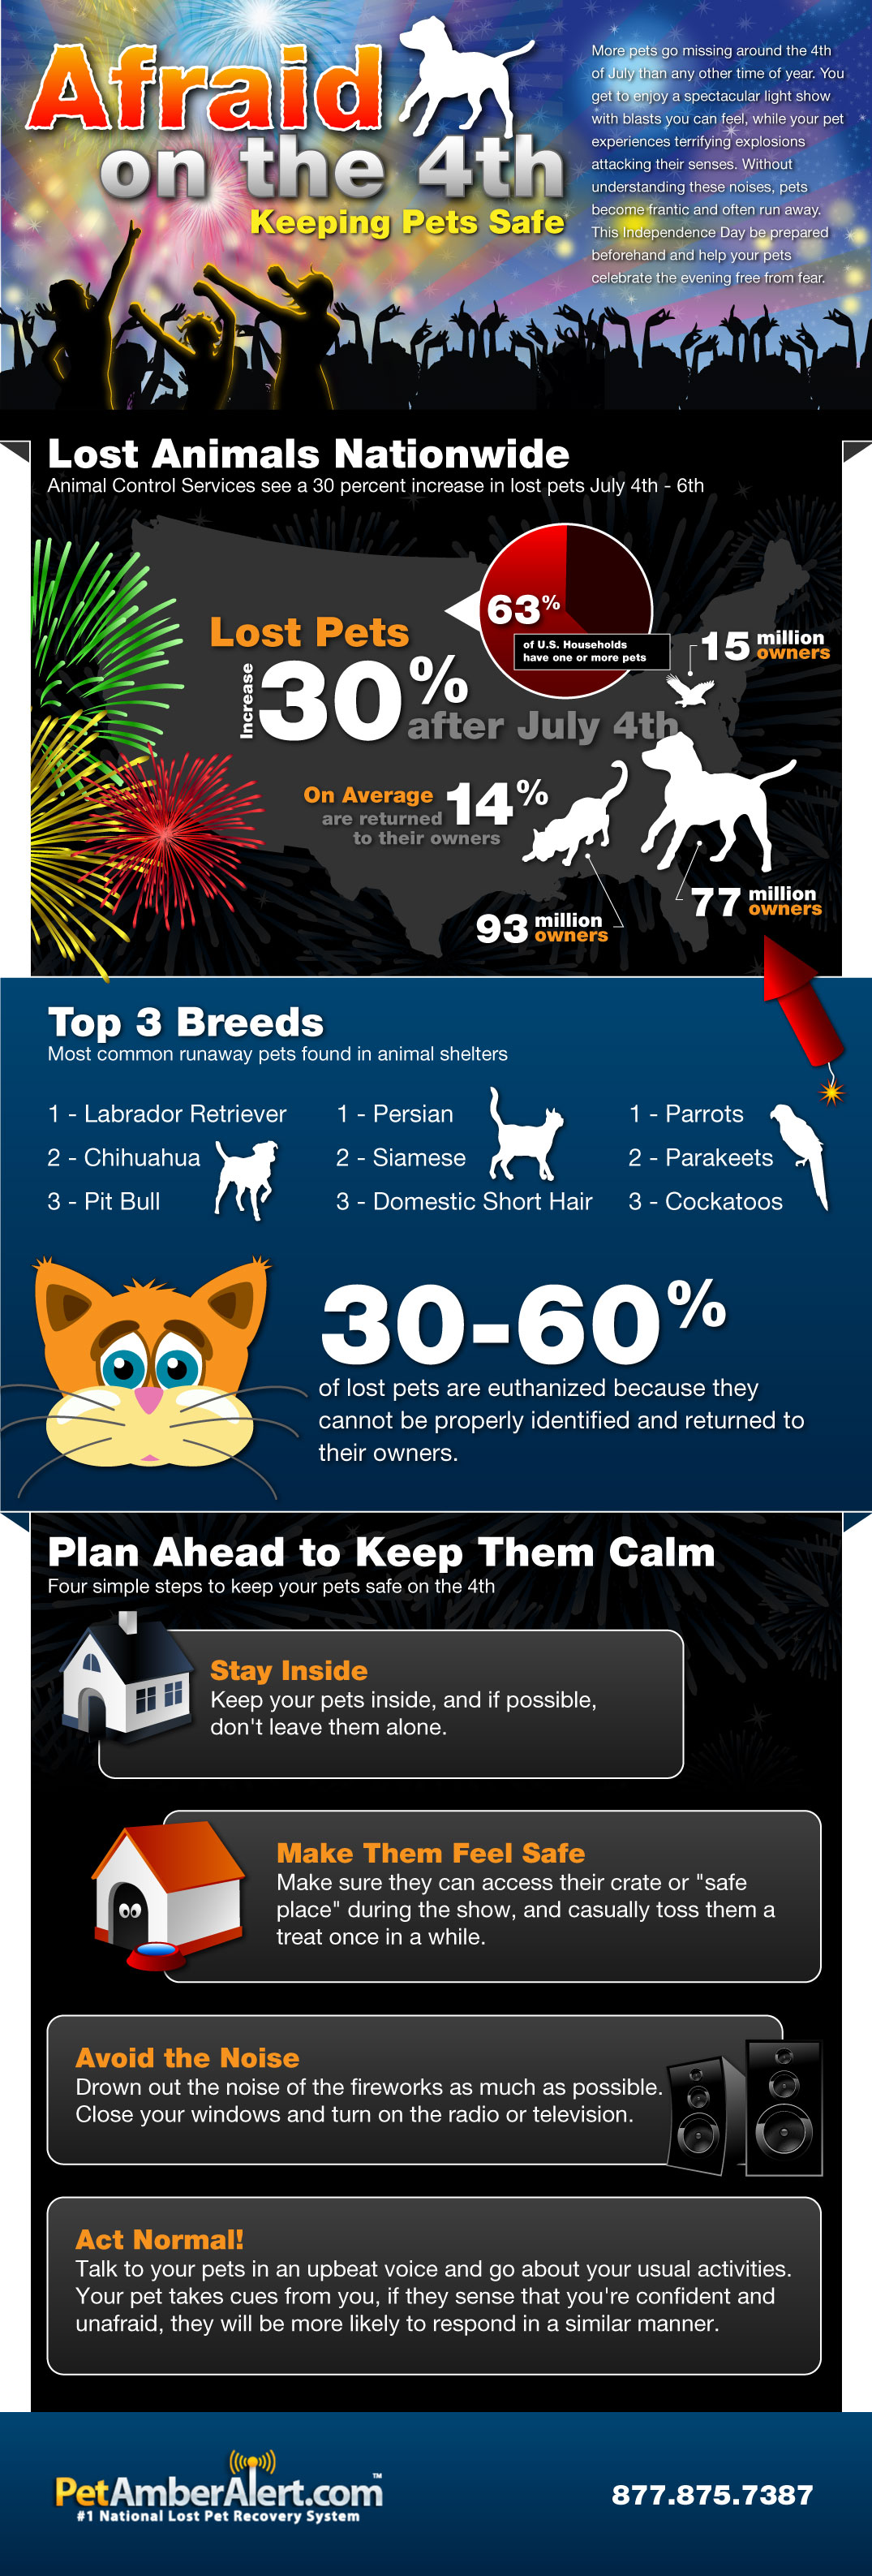 Keeping Your Pets Safe On The 4th of July From PetAmberAlert.com